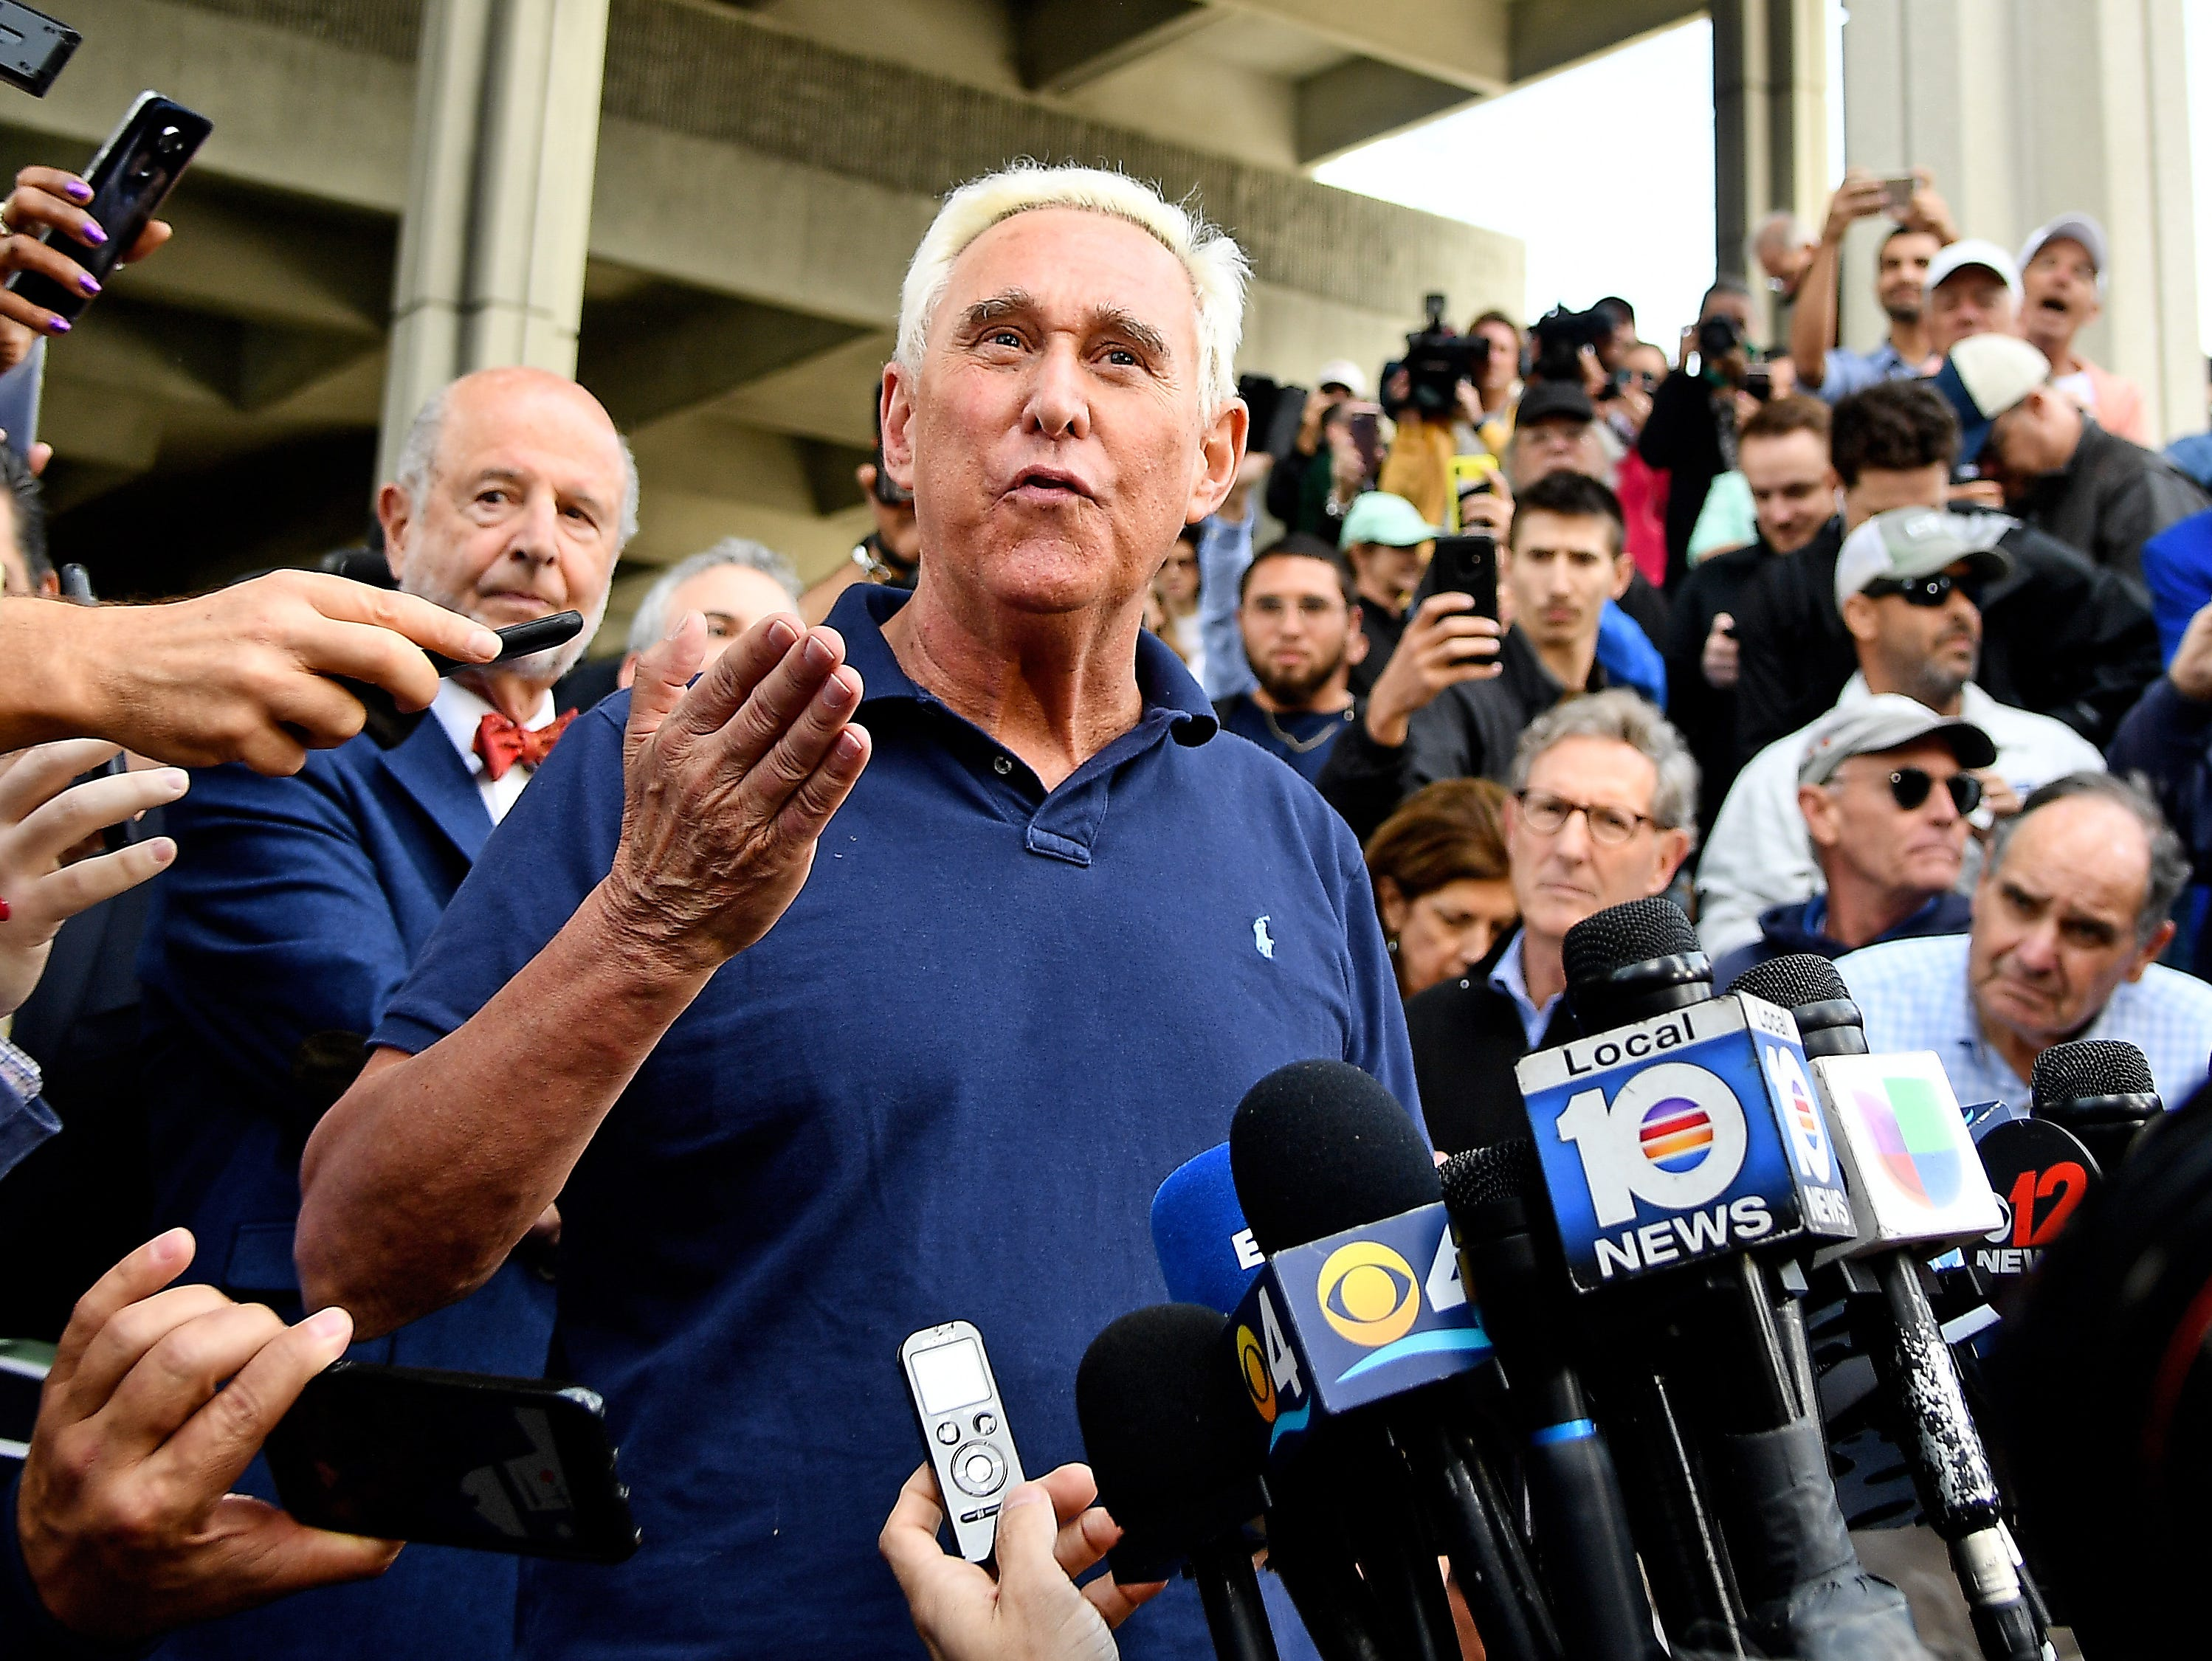 American political consultant Roger Stone speaks to the media after being indicted on federal charges at U.S District Courthouse on Jan. 25, 2019 in Fort Lauderdale, Fla.